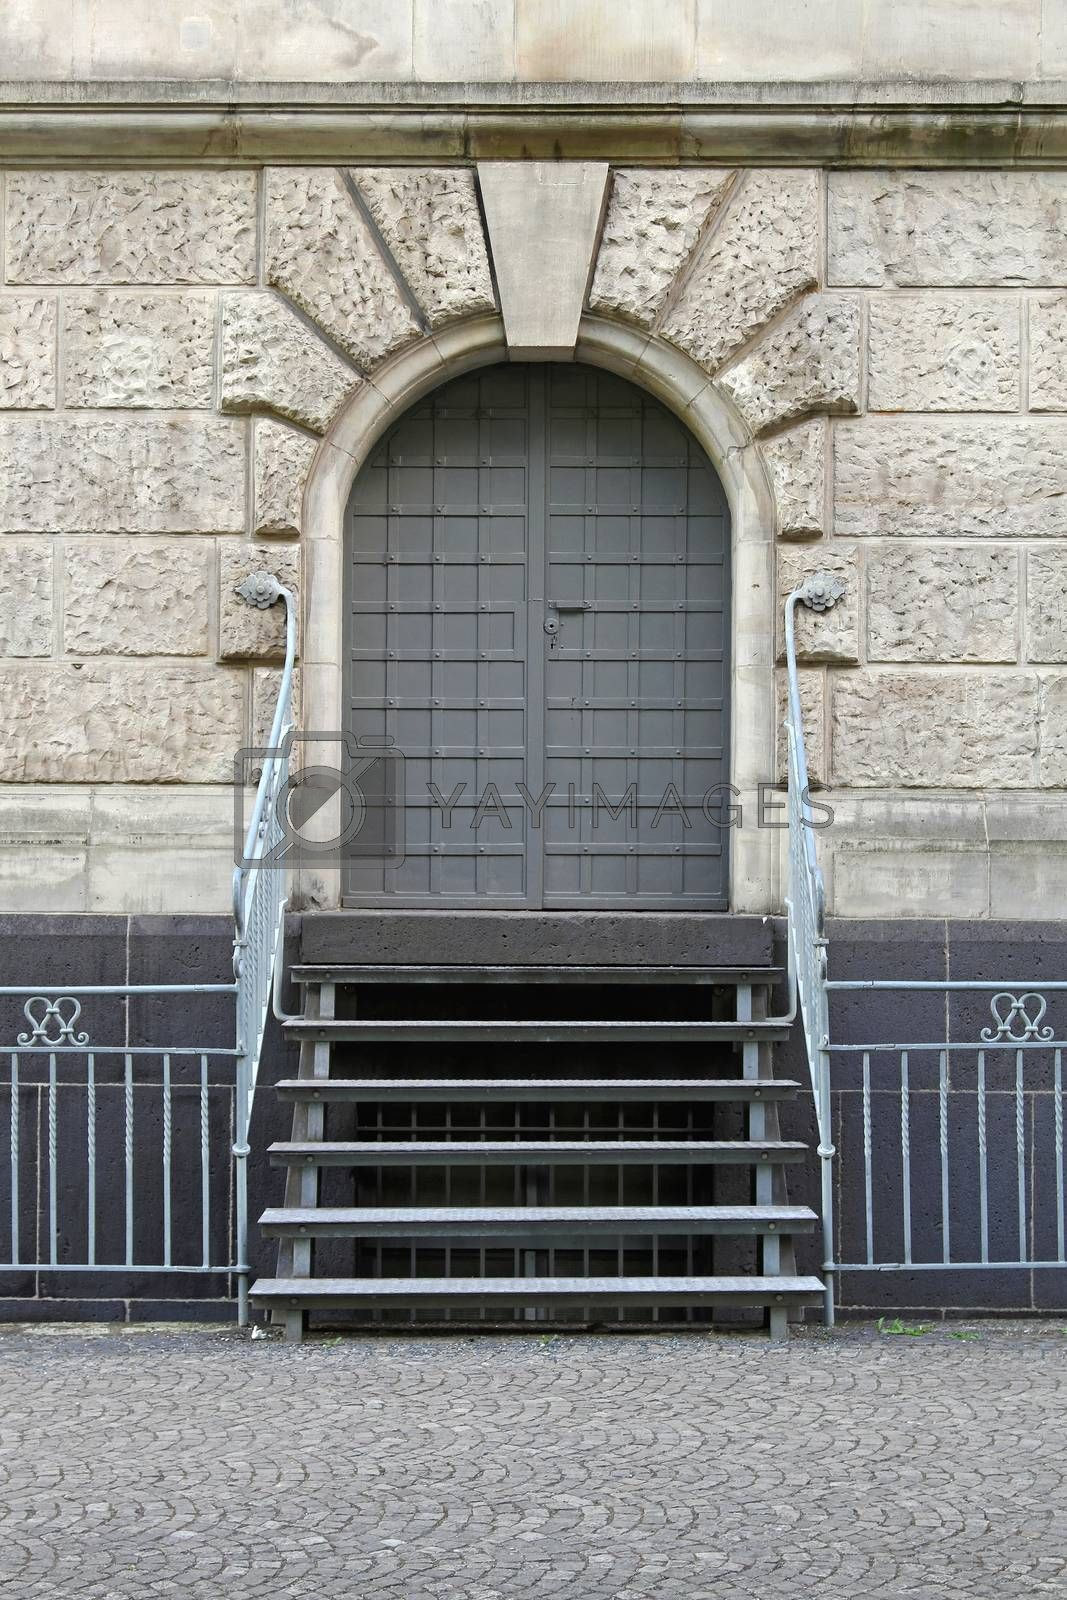 Royalty free image of Arch door by Baloncici